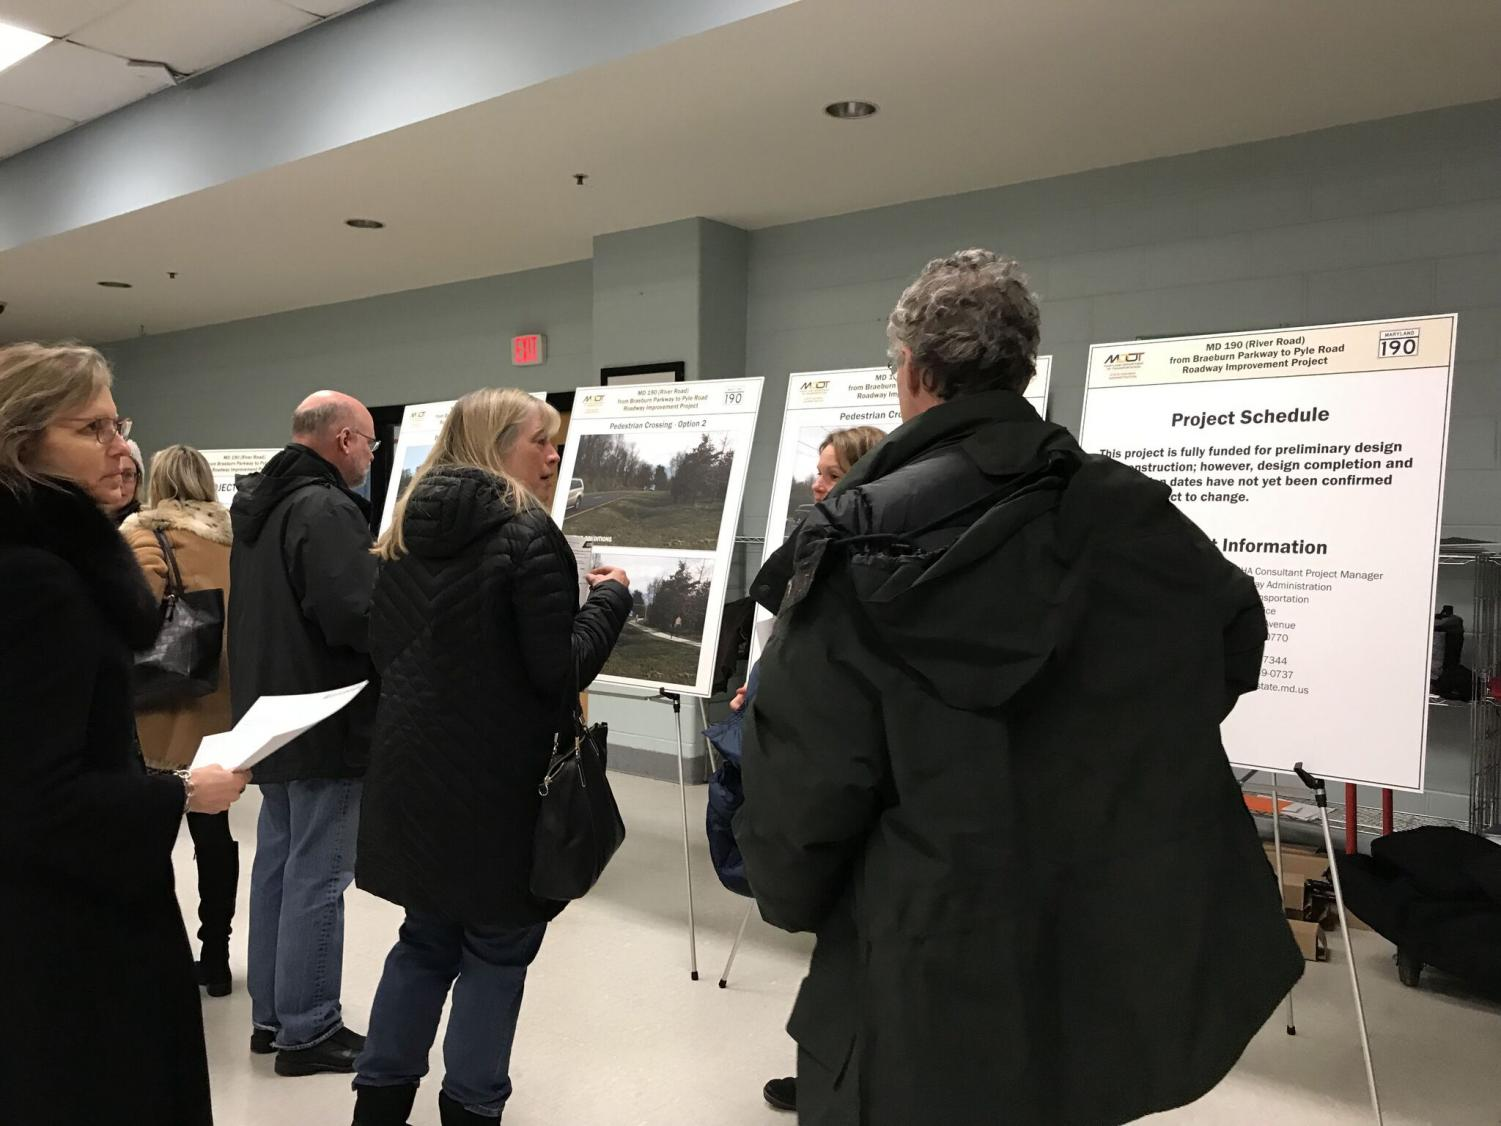 Community members discuss SHA proposals at a community meeting on Jan. 15 in the Pyle middle school cafeteria. An option will be decided on in the coming months and construction plans will be finalized at the end of the year. Photo by Anna Yuan.